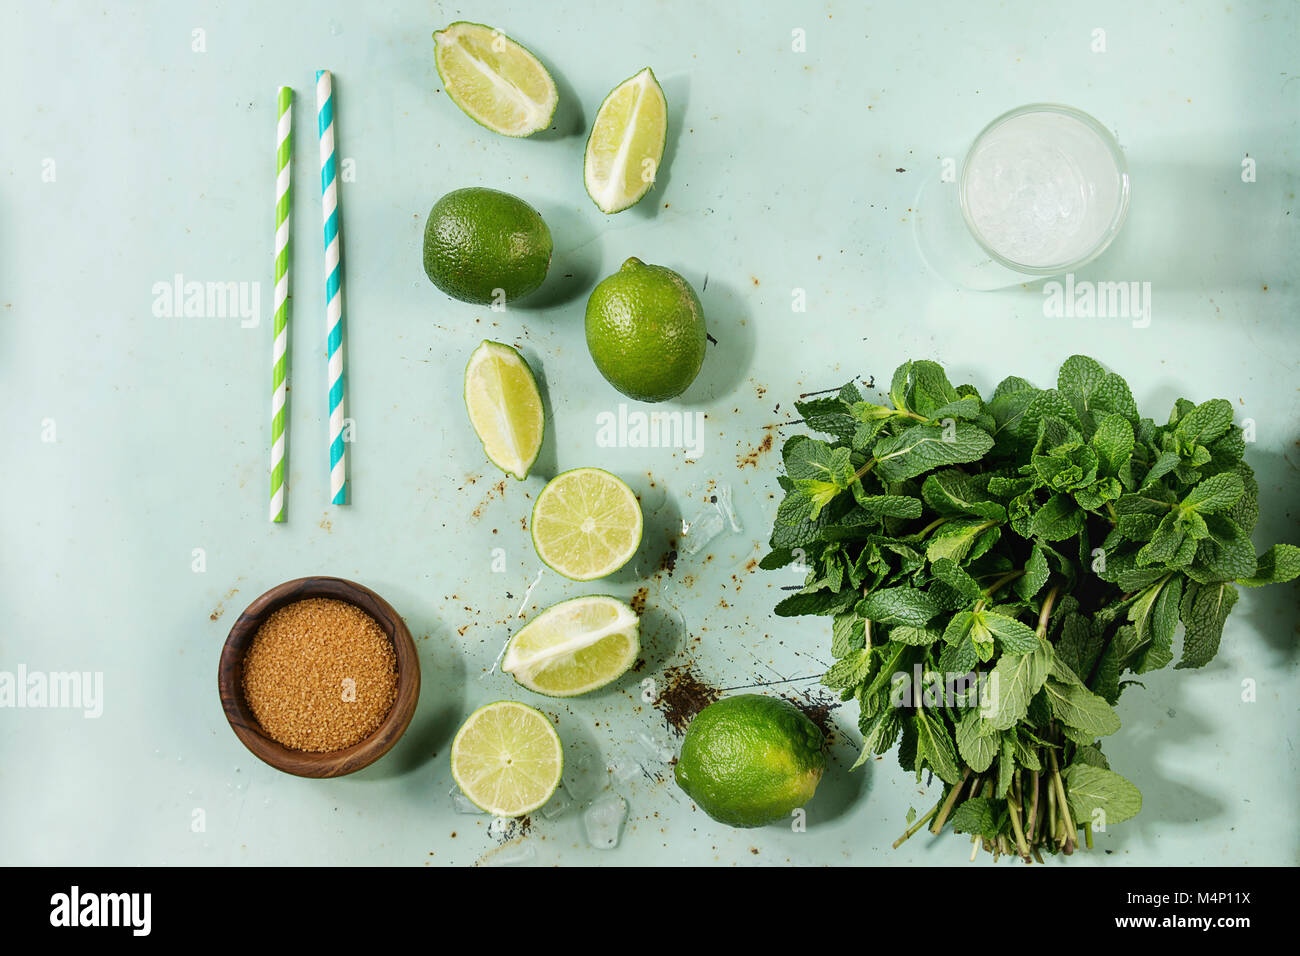 Ingredients for making mojito cocktail. Bundle of fresh mint, limes, brown sugar, crashed ice cubes, glass of soda - Stock Image